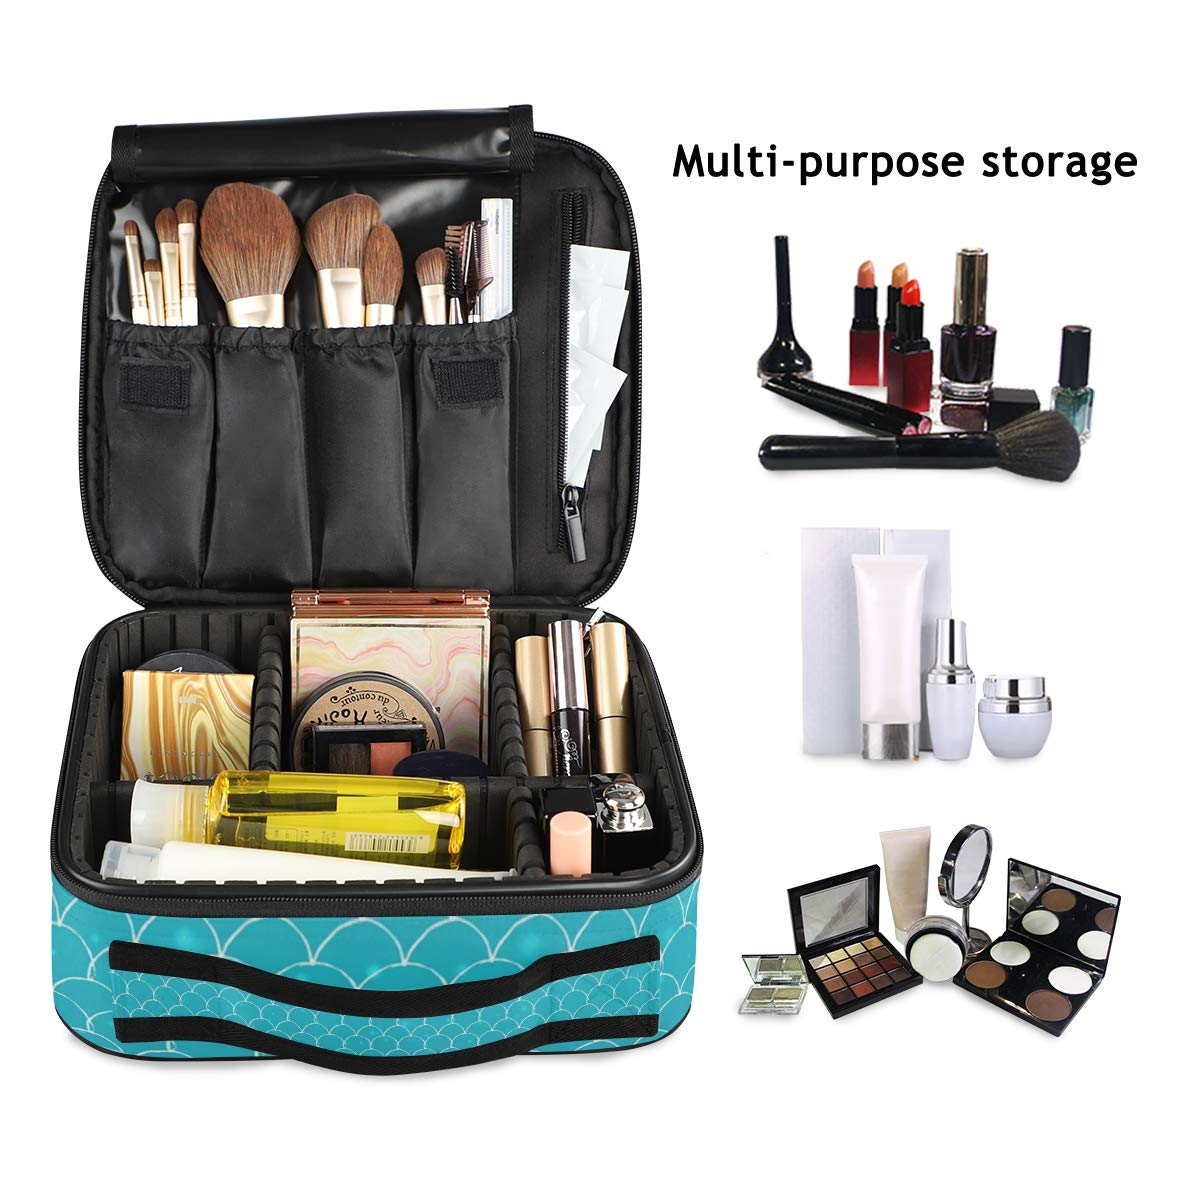 Mr.Lucien Mermaid Travel Makeup Train Case Scale Spray Blue Ocean Gradient Travel Cosmetic Case for girl Women Portable with Adjustable Dividers for Cosmetics Makeup Brushes Case 2020005 61yKT8txSCL